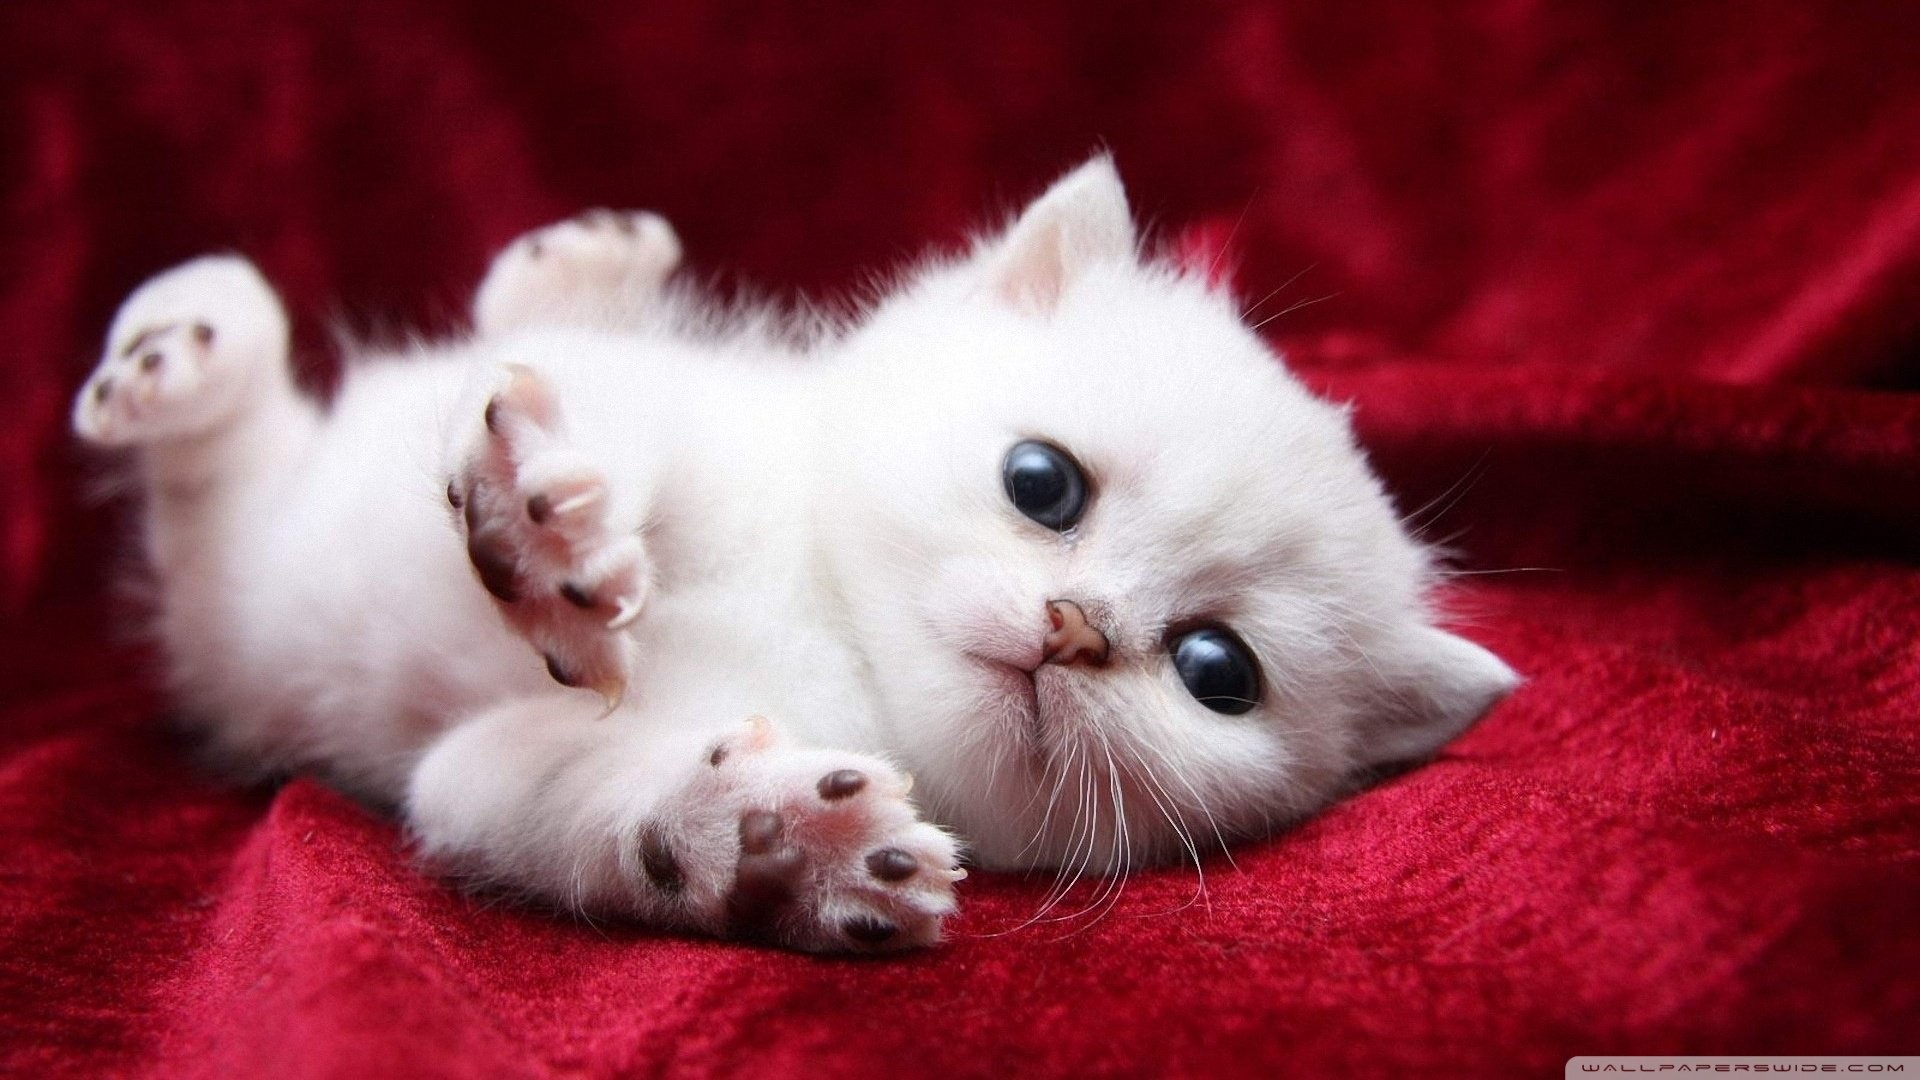 2560x1600 1920x1080 High Resolution Cute Baby Animal Kitty Cat Wallpaper Hd 17 Full